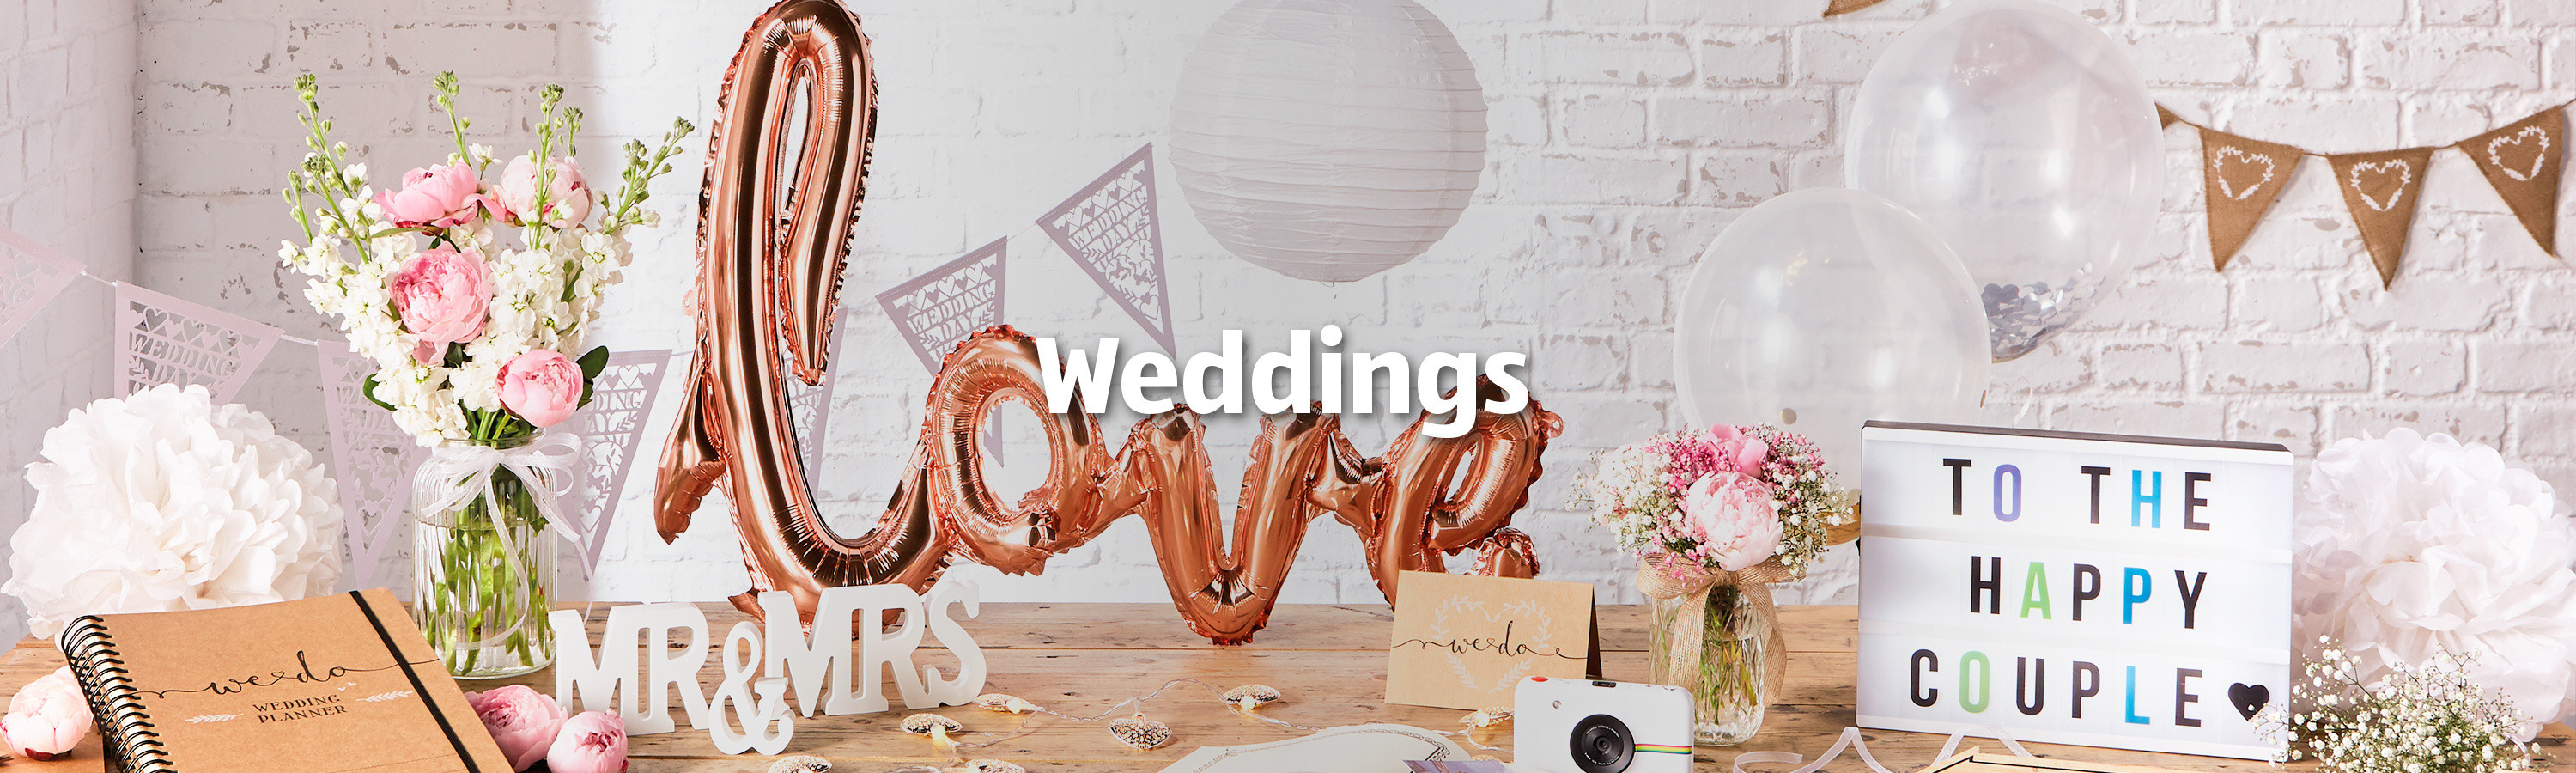 Wedding Supplies | Wedding Wines | Instant Polaroid Cameras - ALDI UK